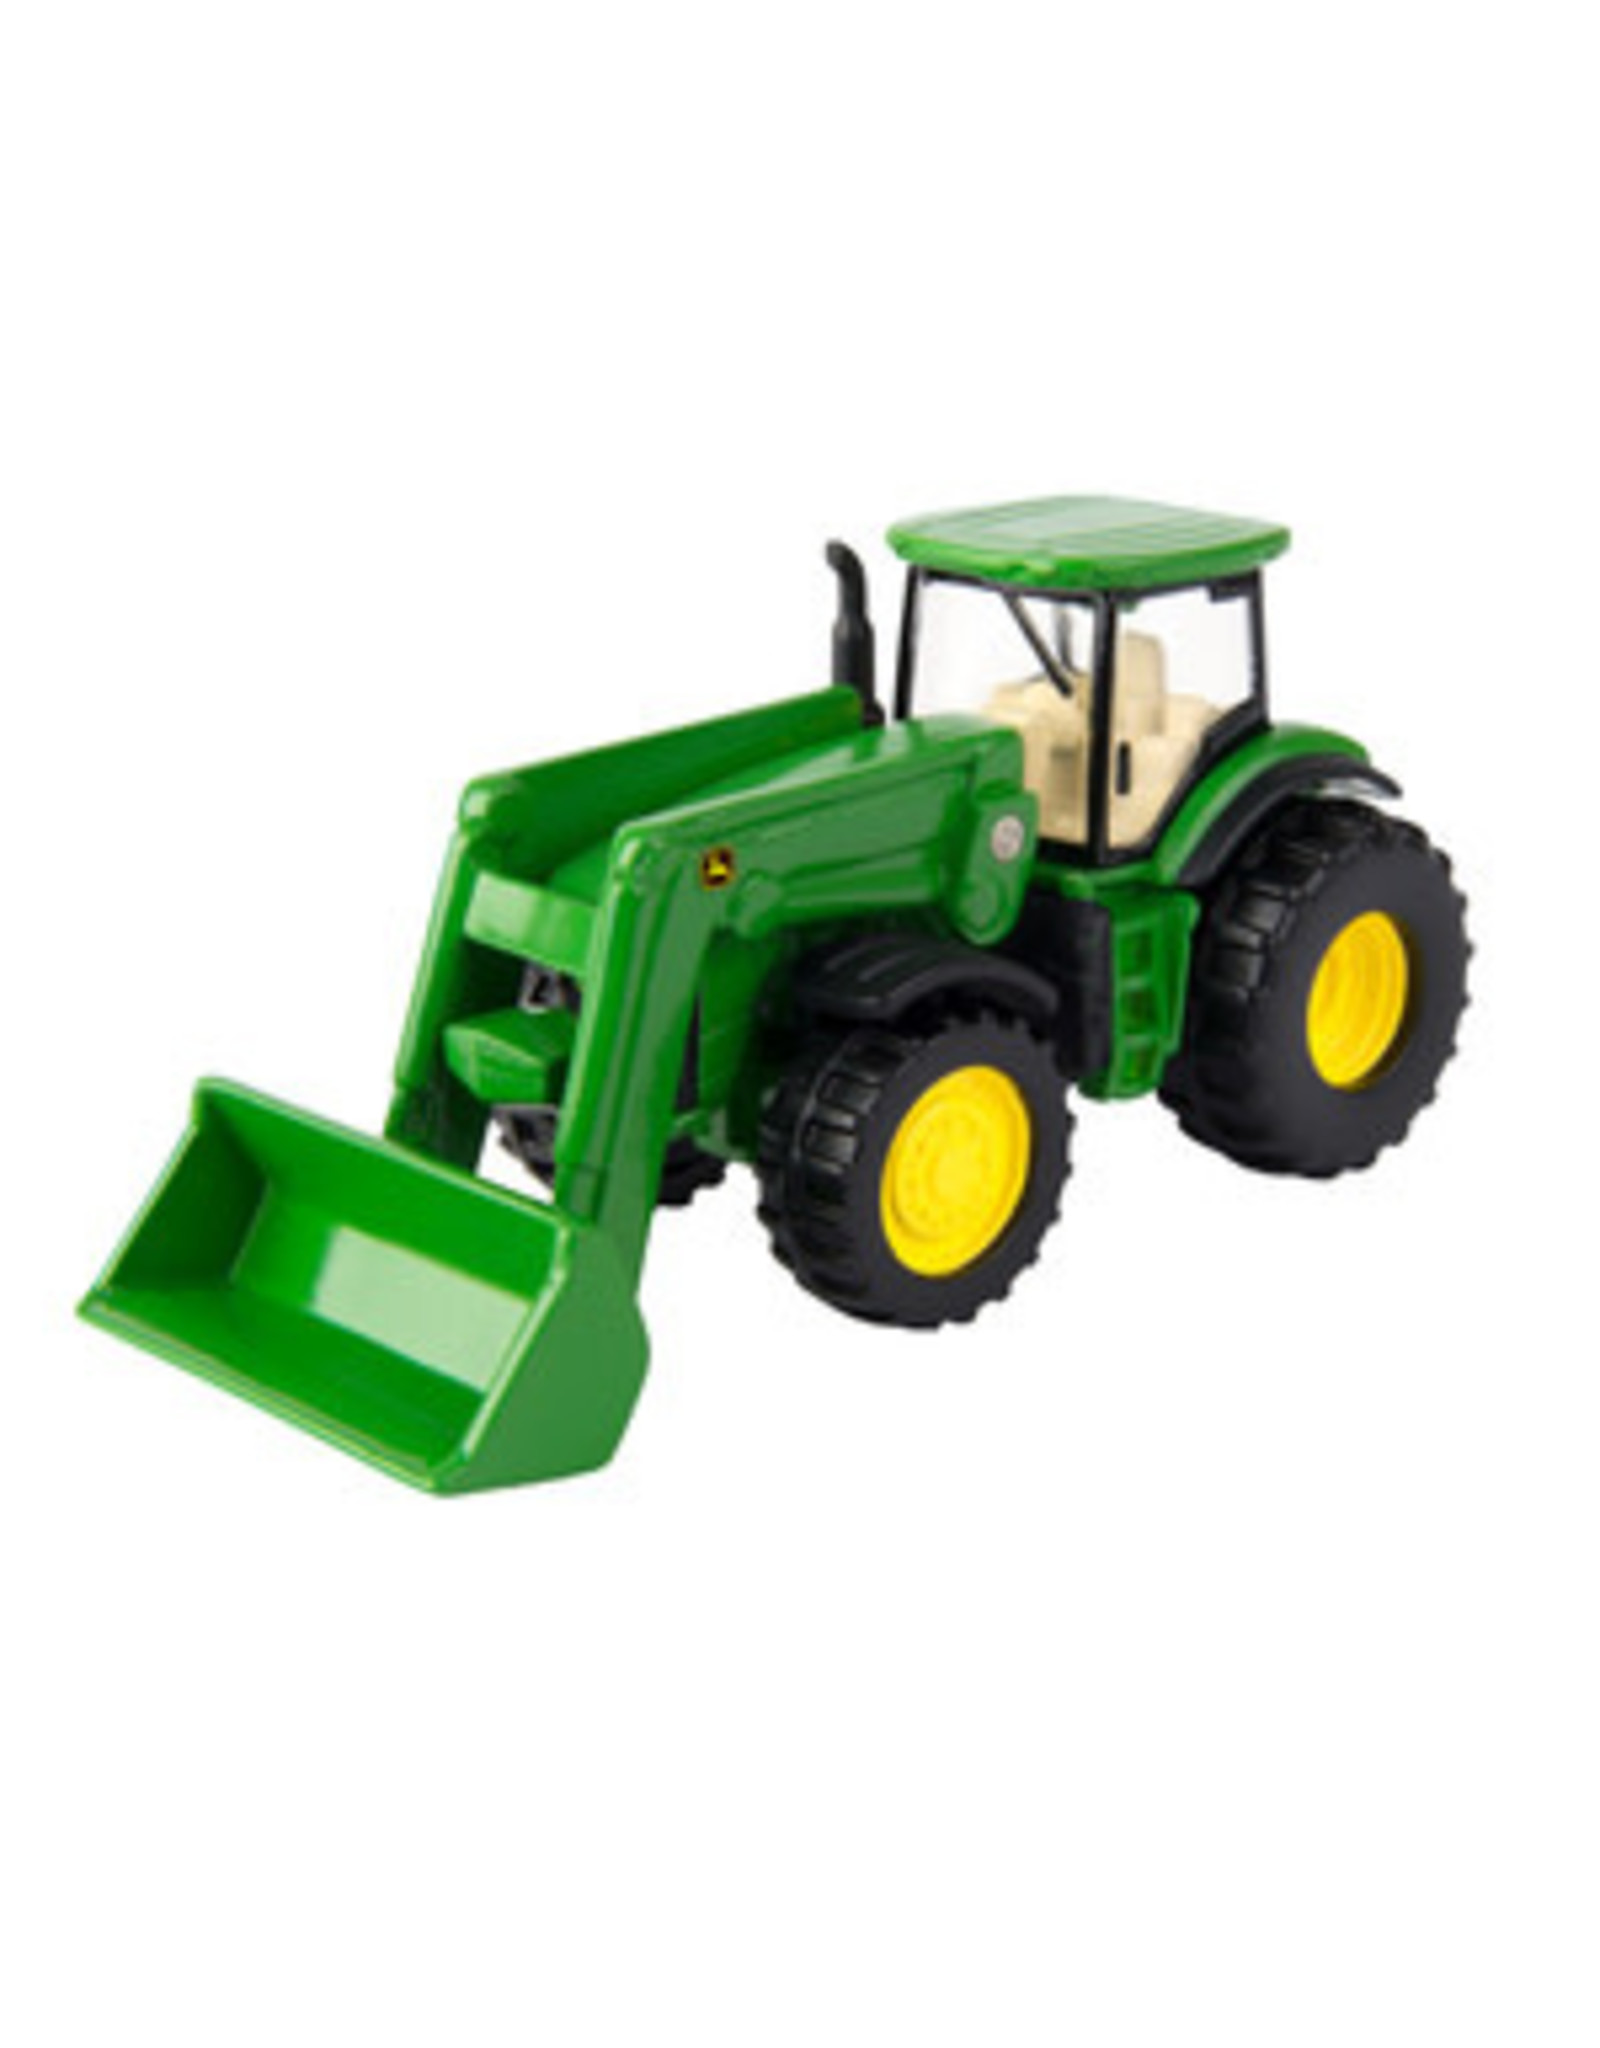 John Deere Vehicle, 8370R